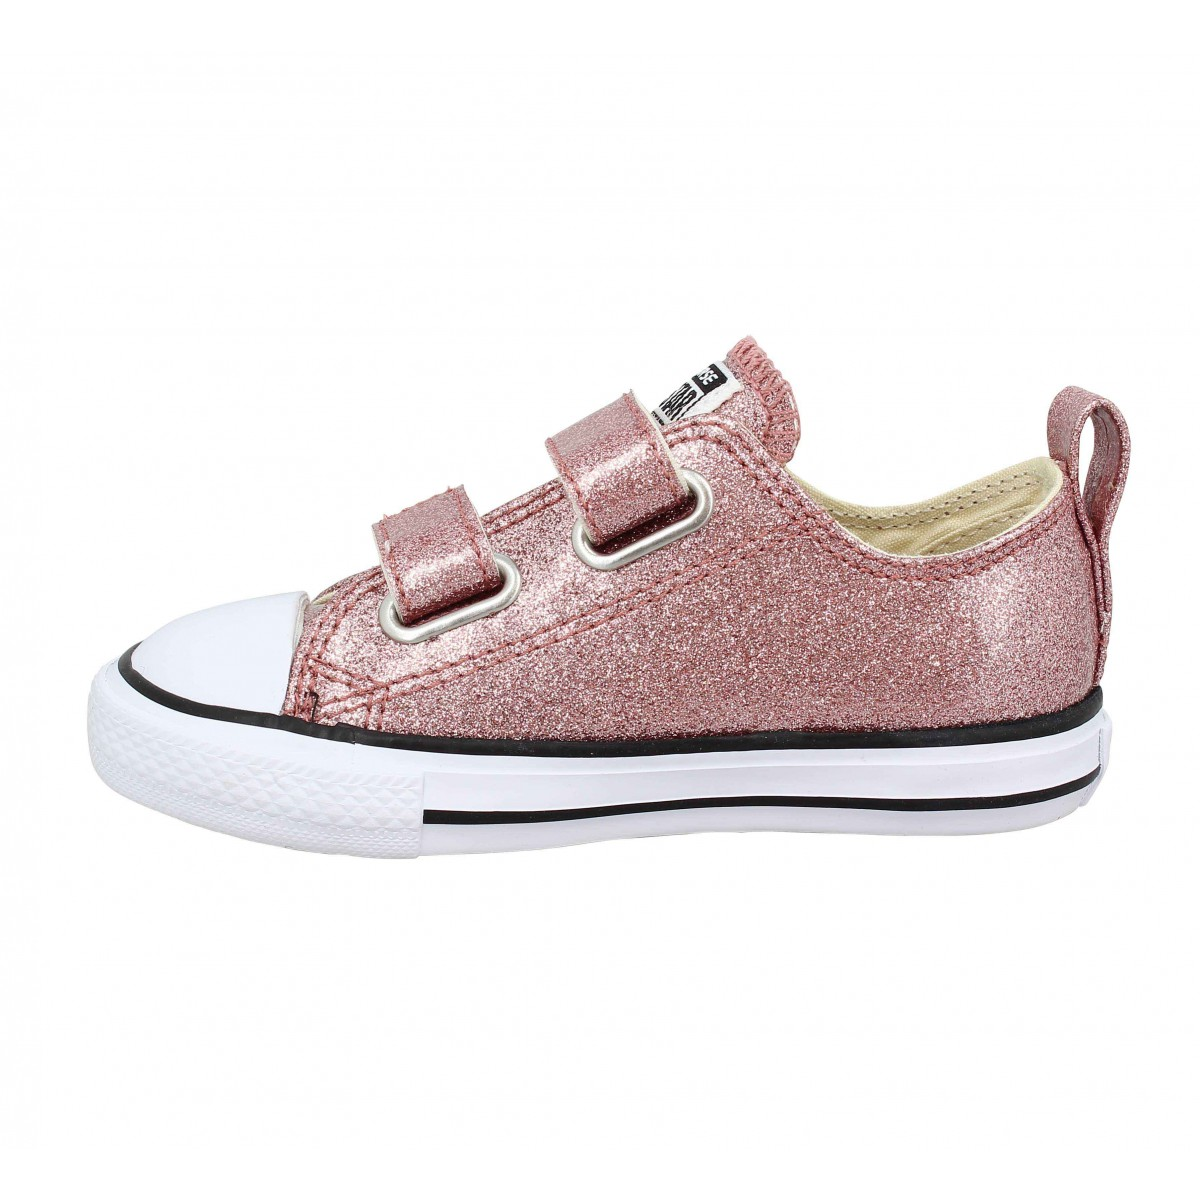 Chaussures Converse chuck taylor all star 2v paillettes